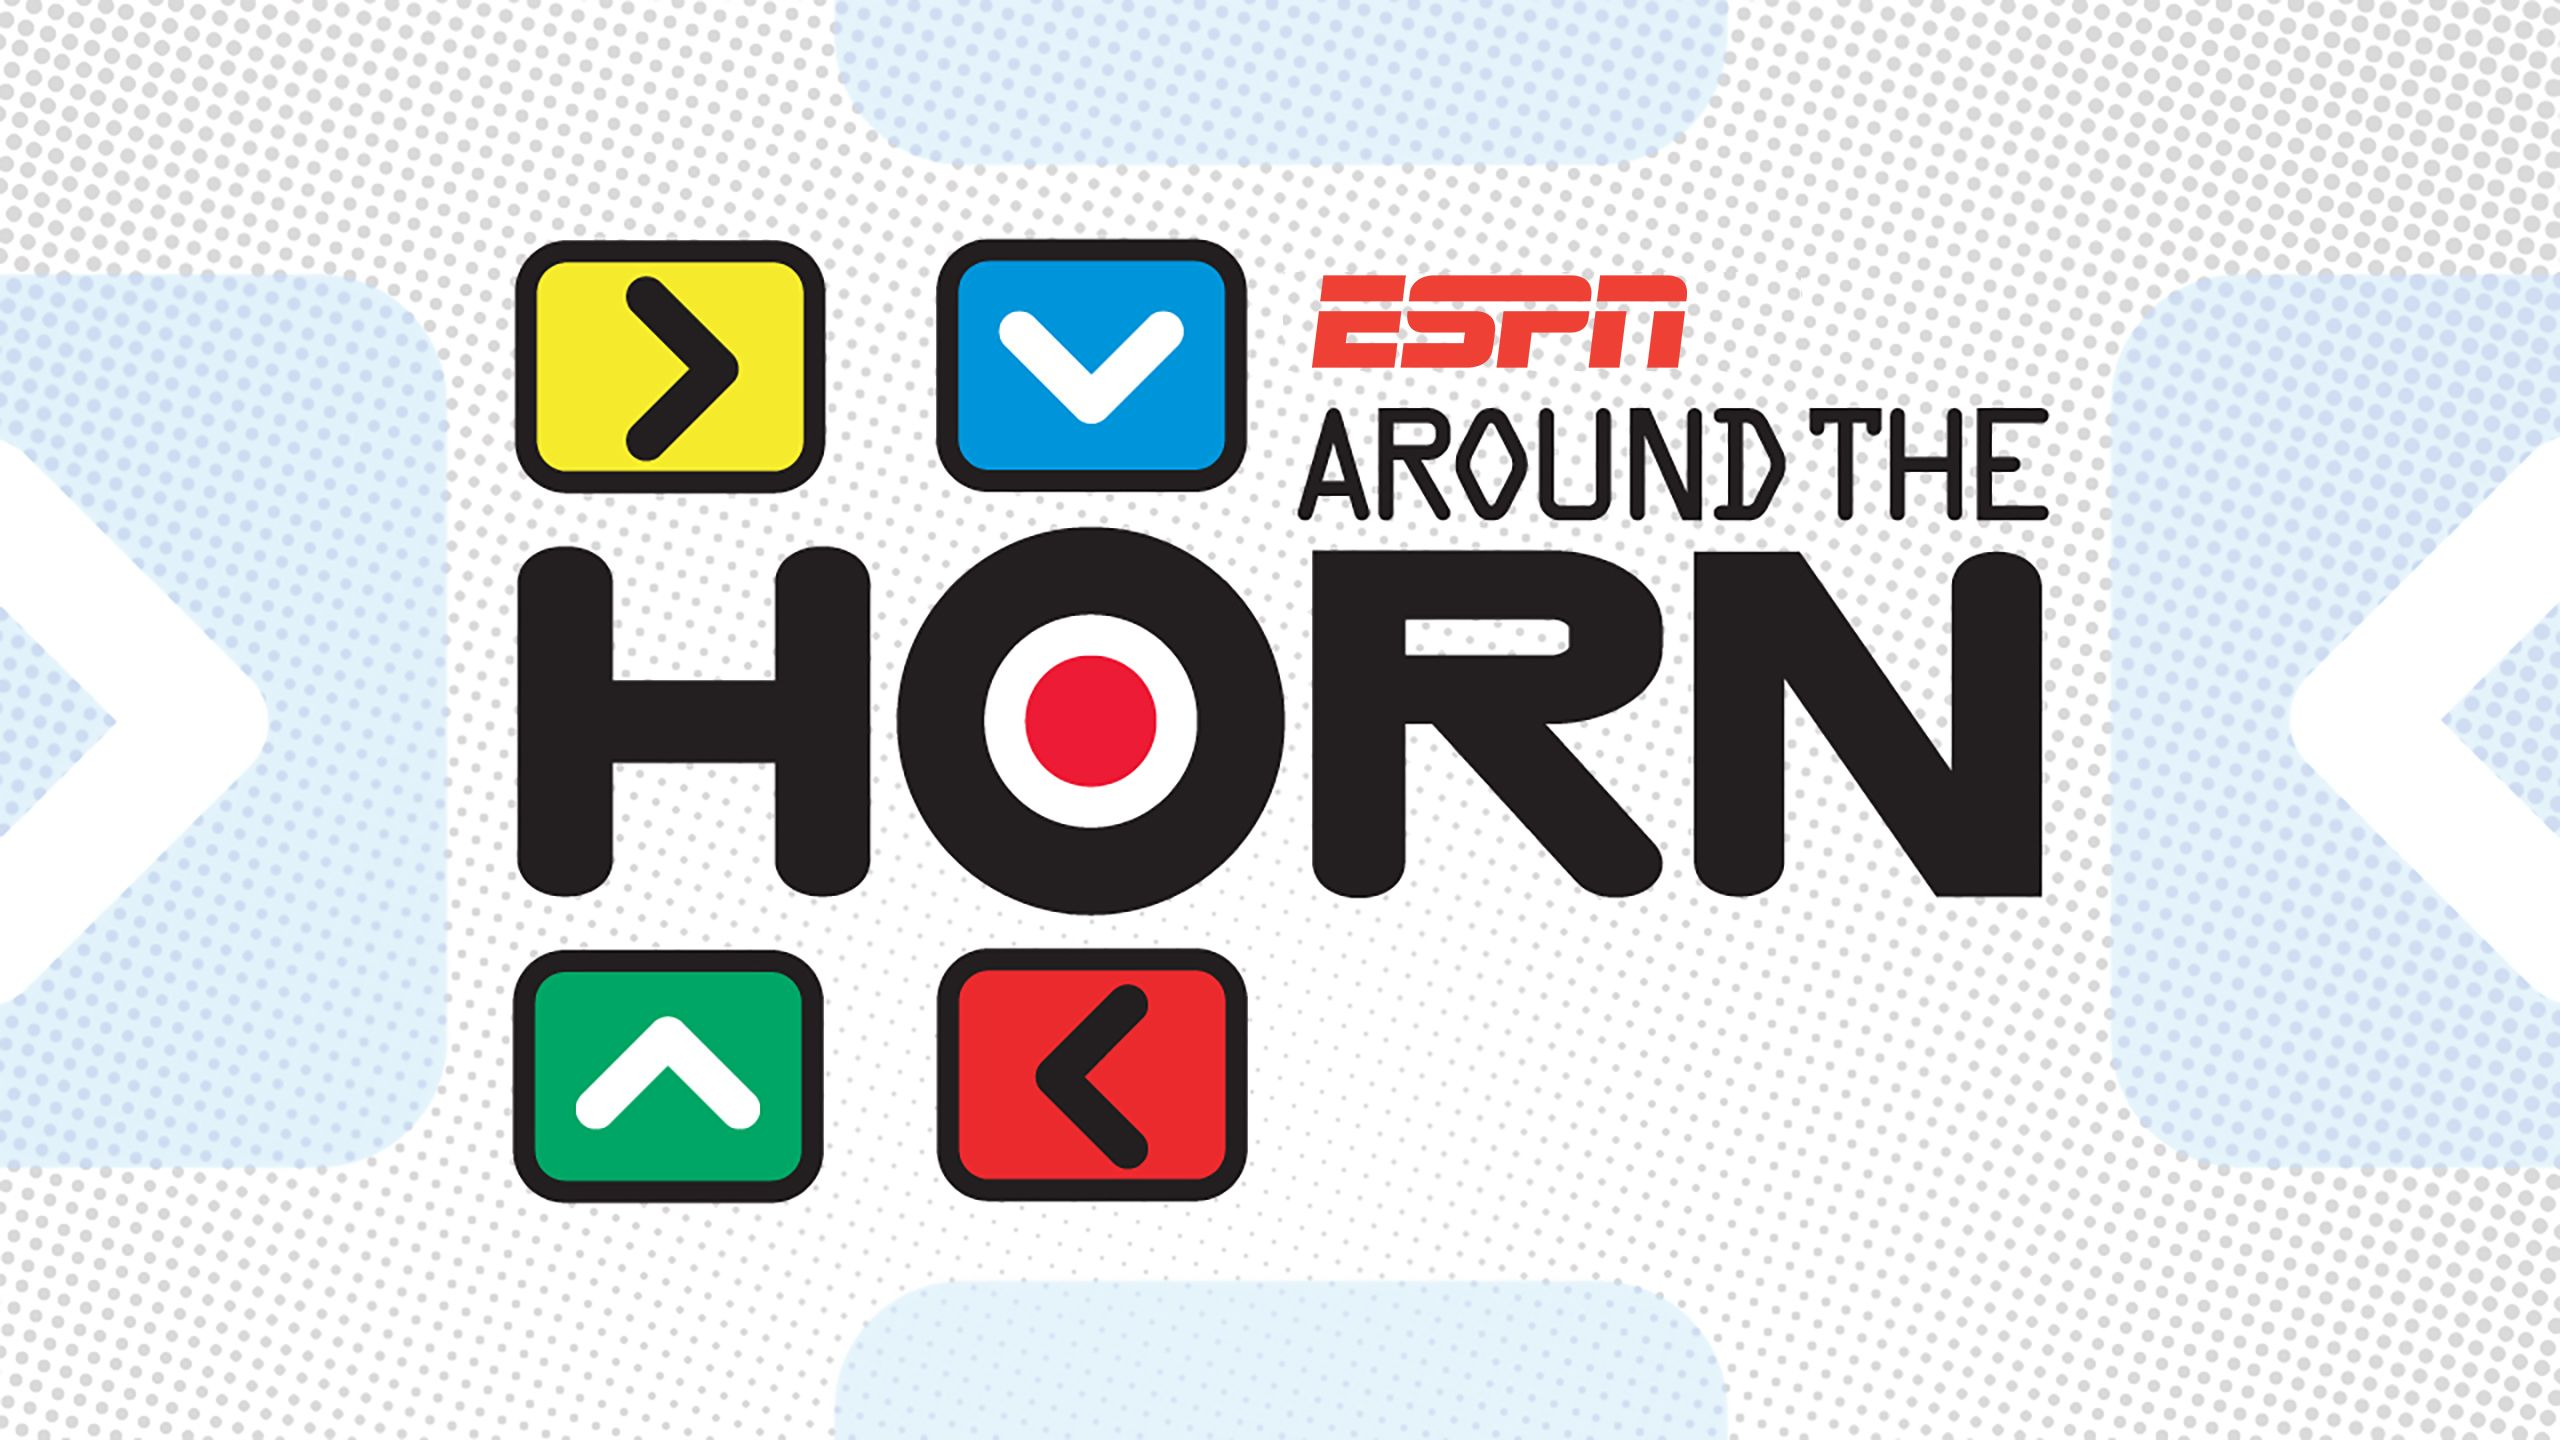 Mon, 10/16 - Around The Horn